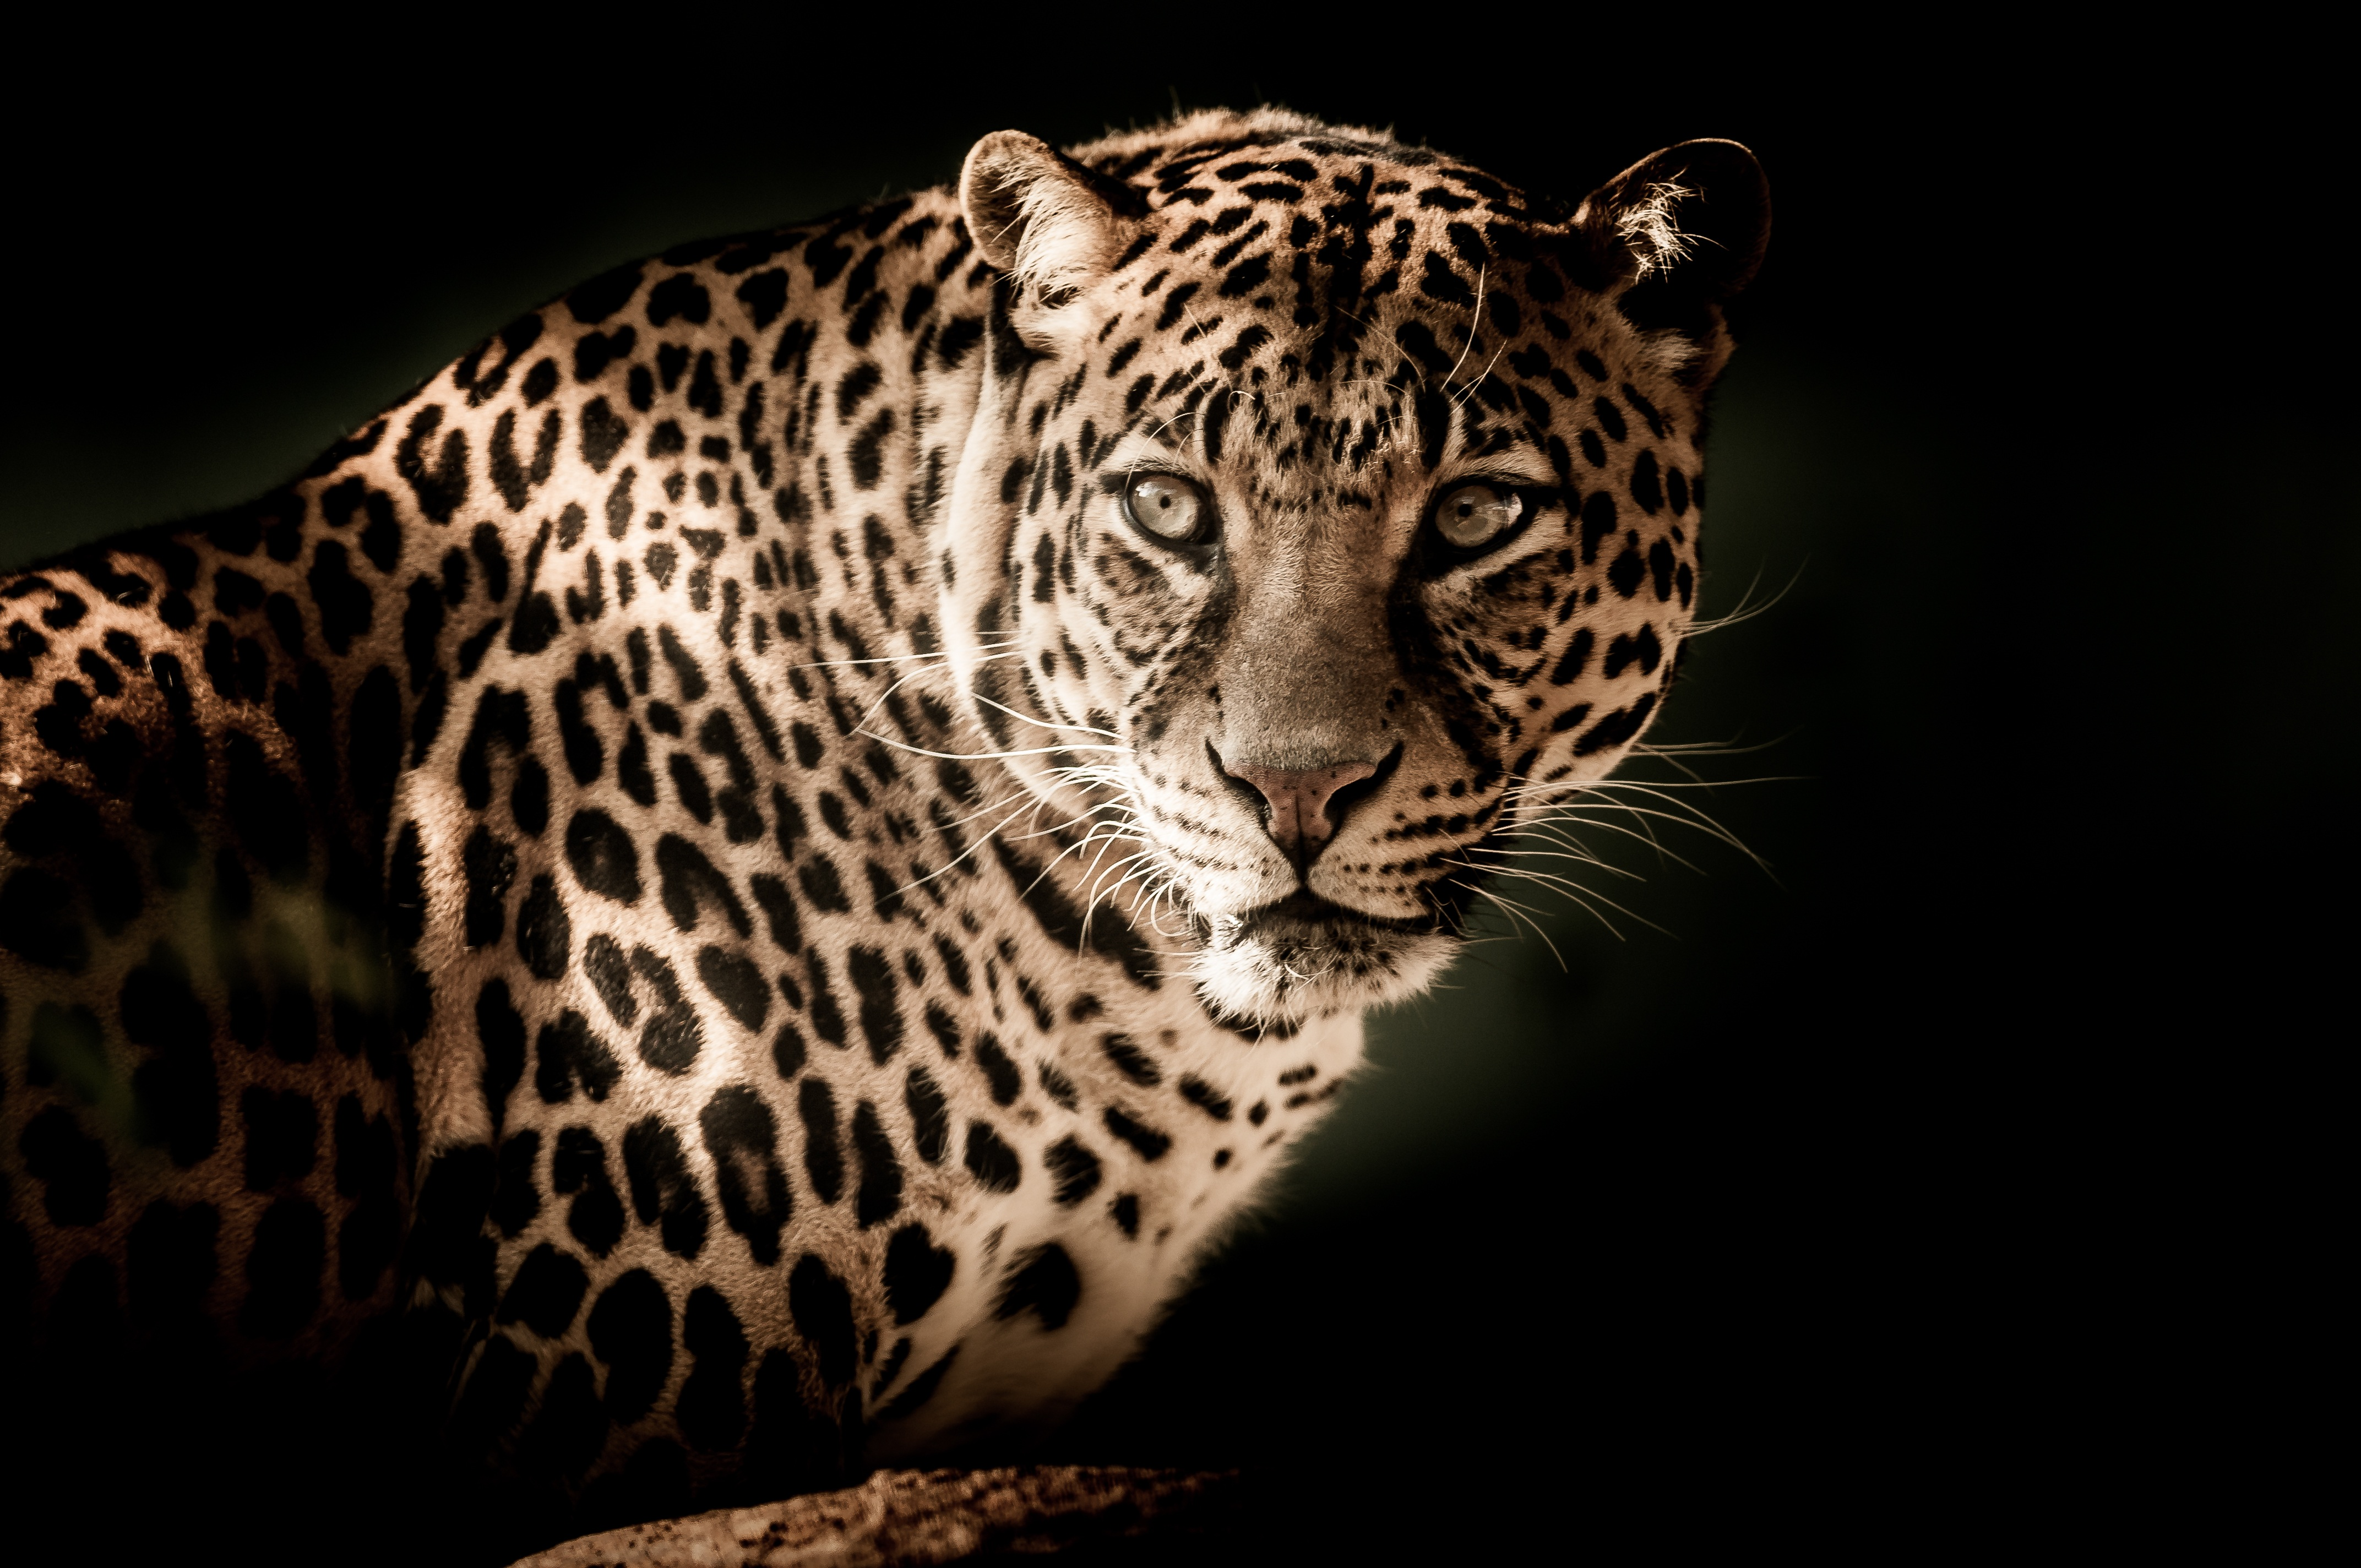 122085 download wallpaper Animals, Leopard, Muzzle, Predator, Sight, Opinion screensavers and pictures for free